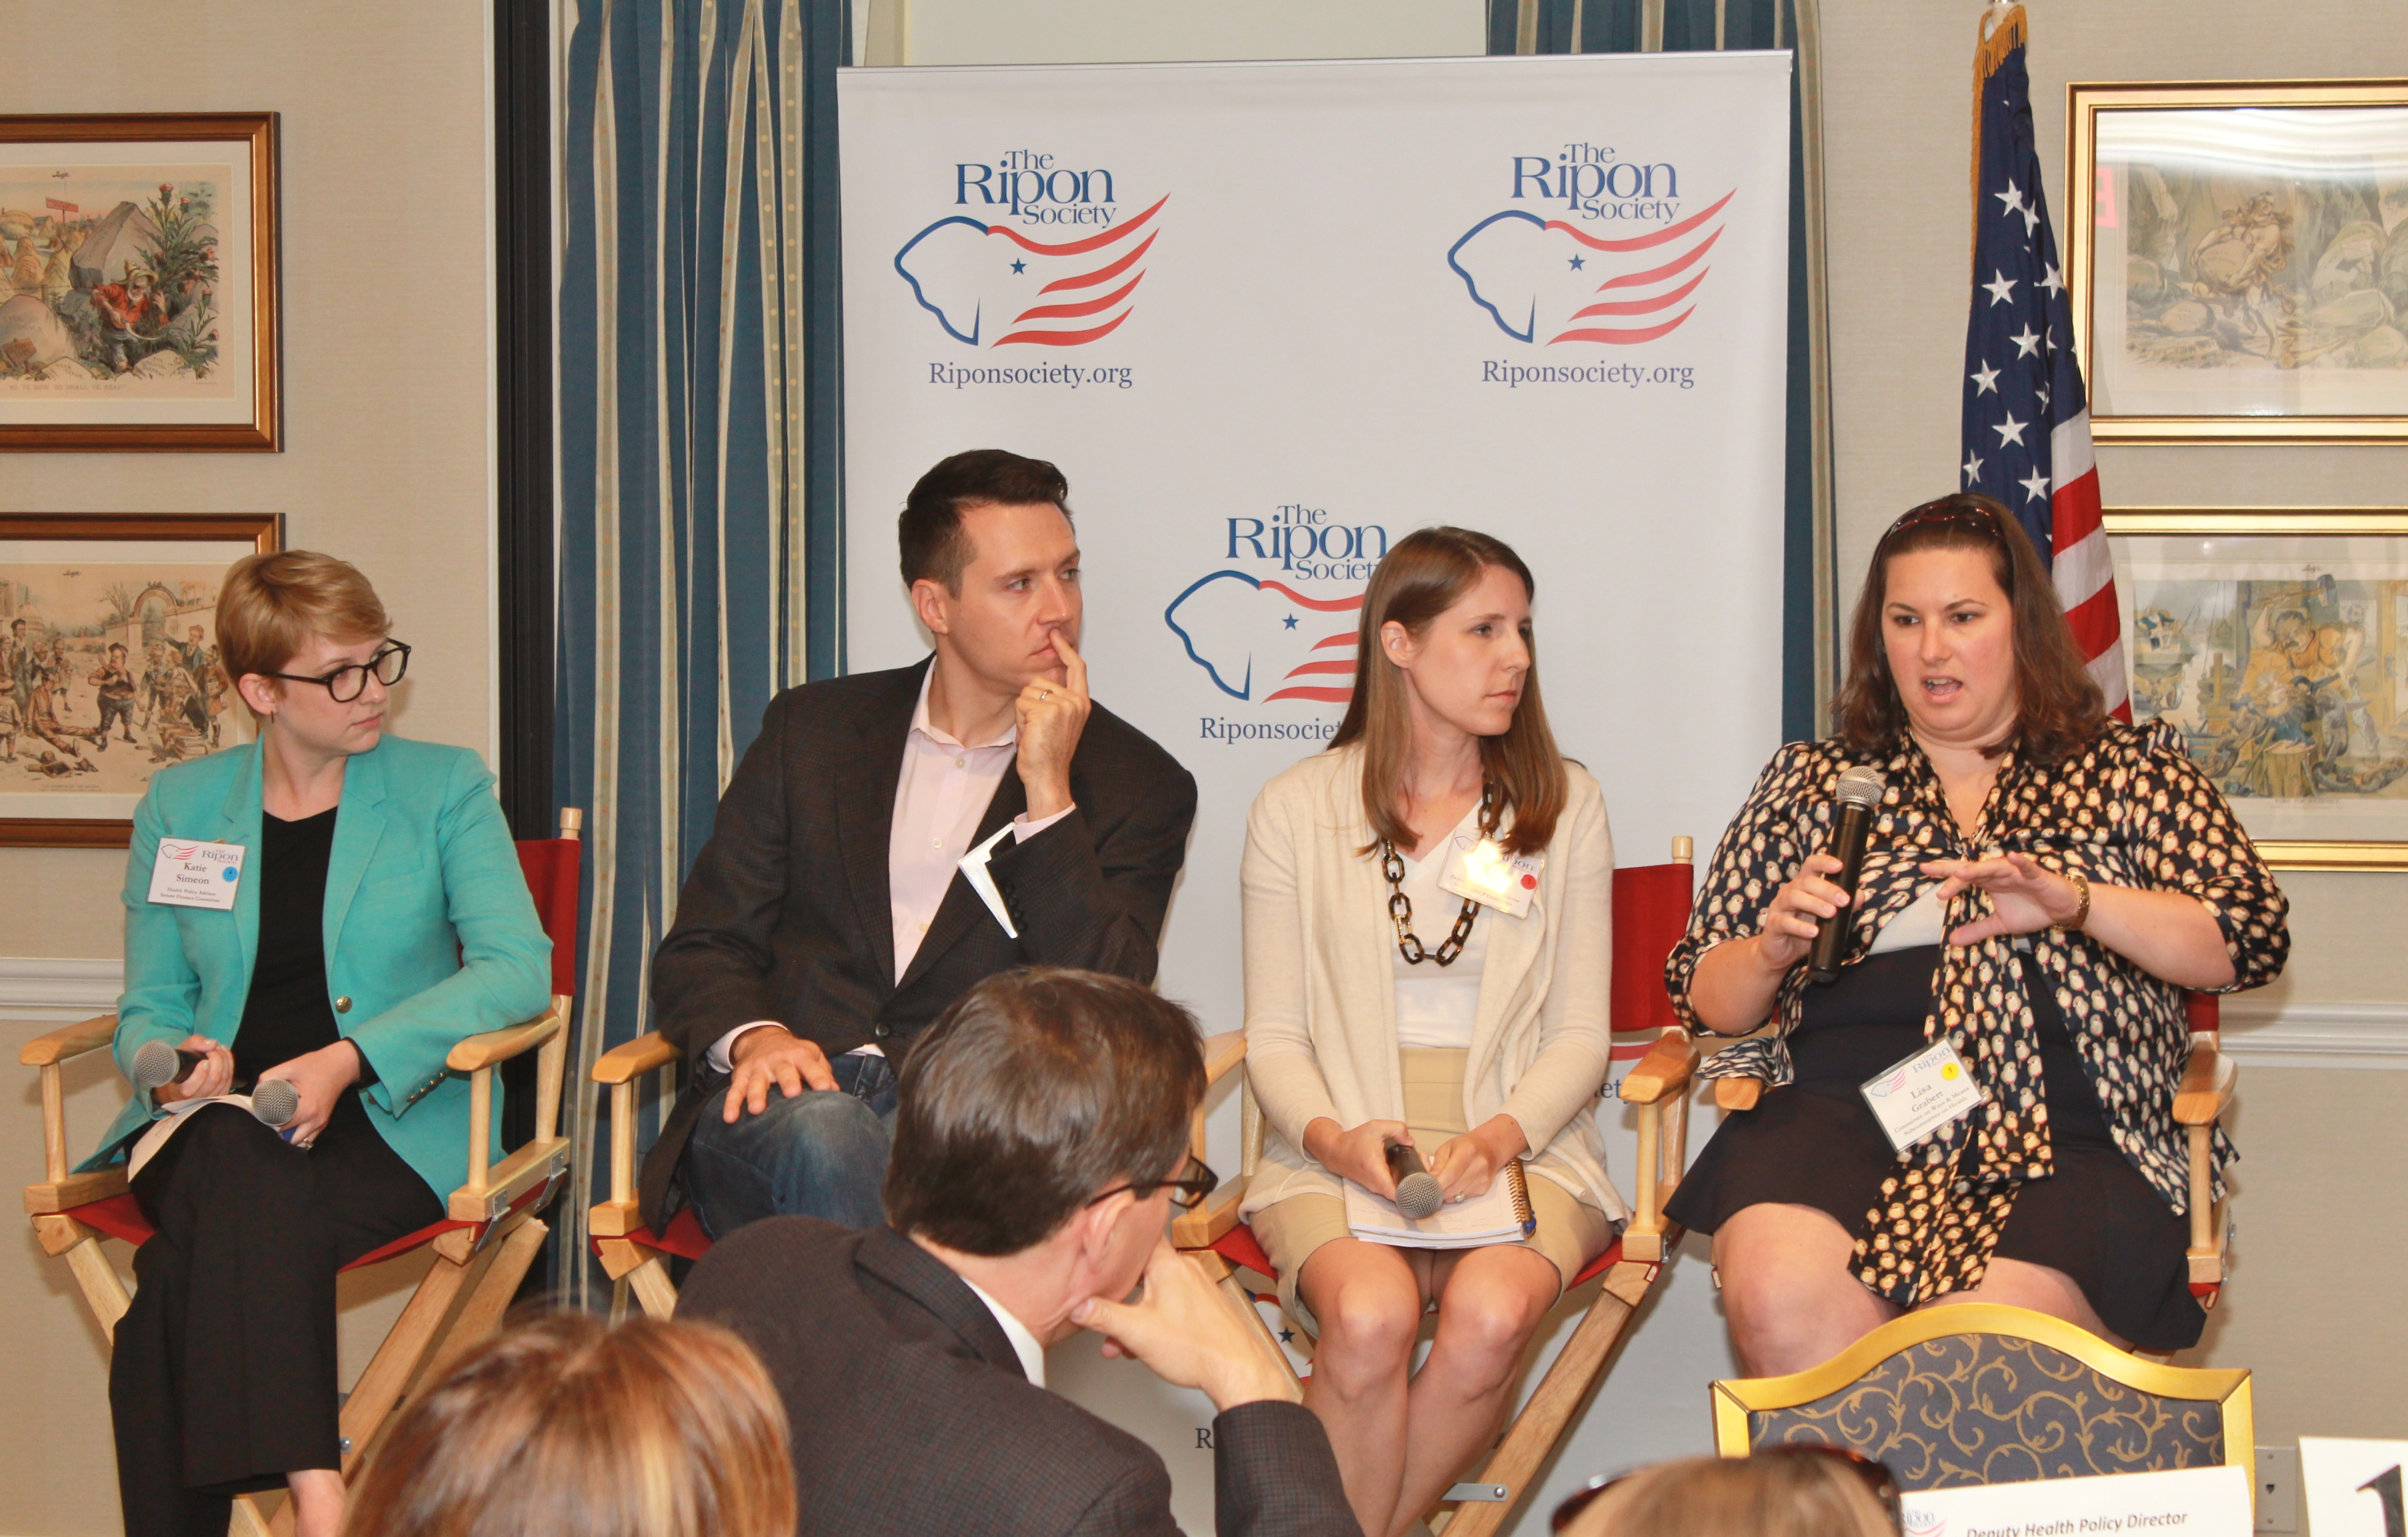 With health care premiums on the rise and concerns about coverage growing as well, the Ripon Society recently hosted a panel discussion looking at the next step in the health care debate.